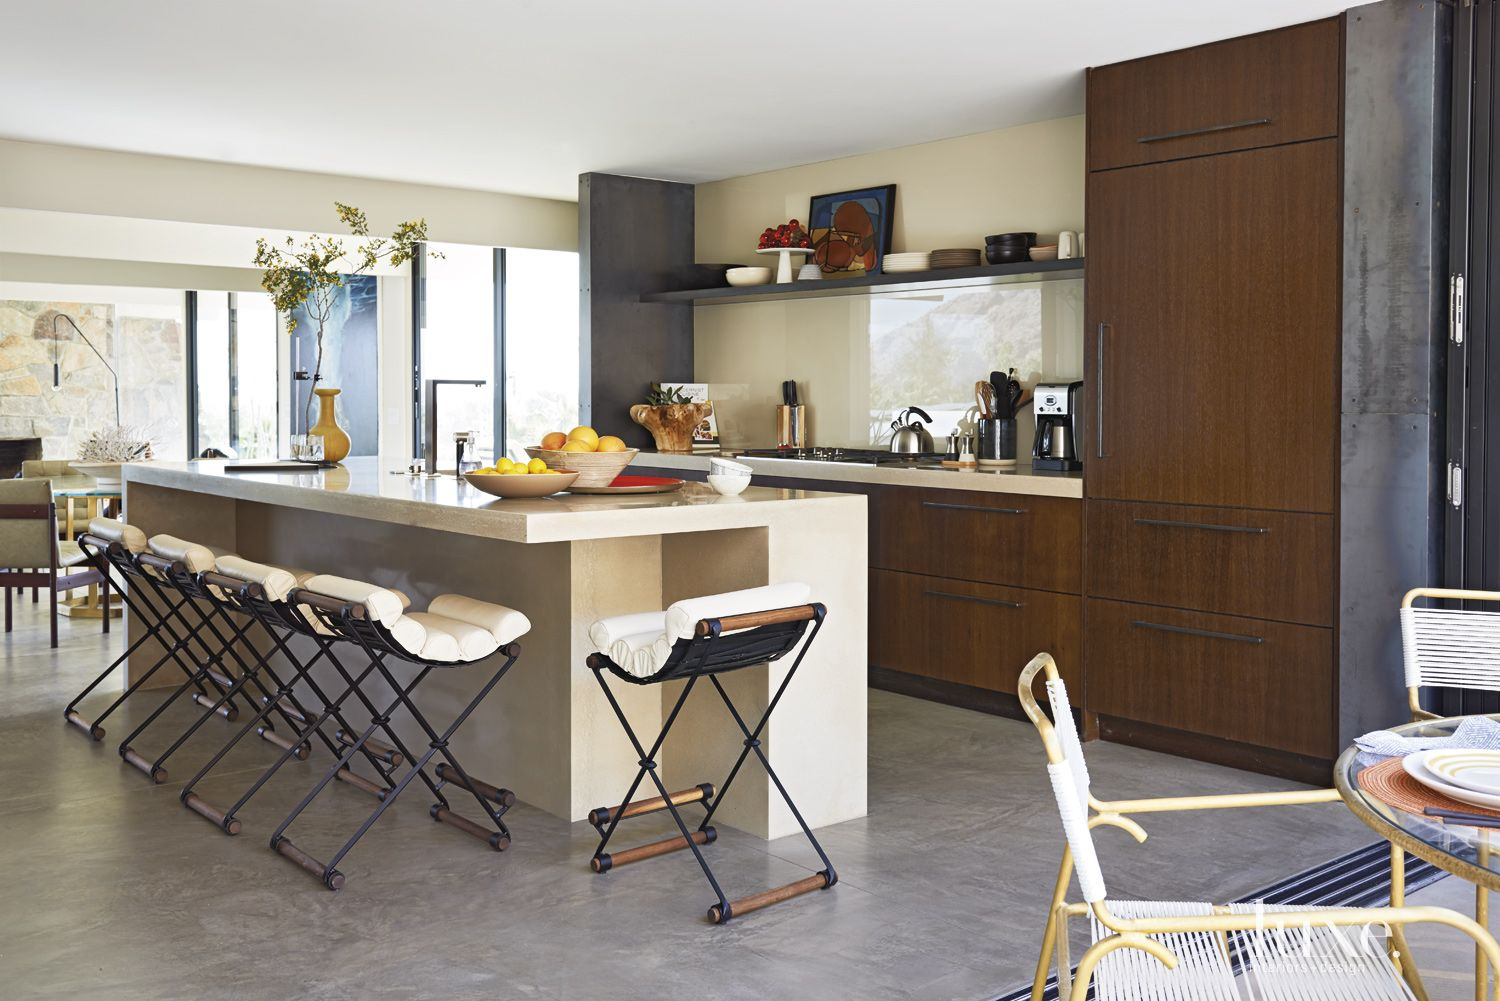 Modern White Kitchen with Vintage-Inspired Furnishings